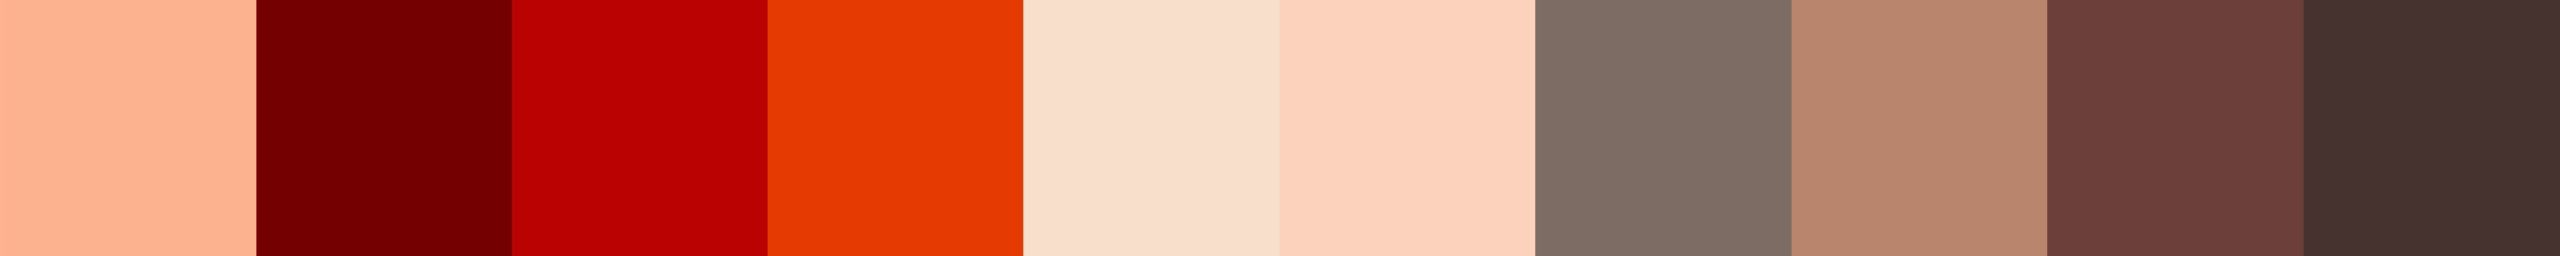 503 Sistazza Color Palette